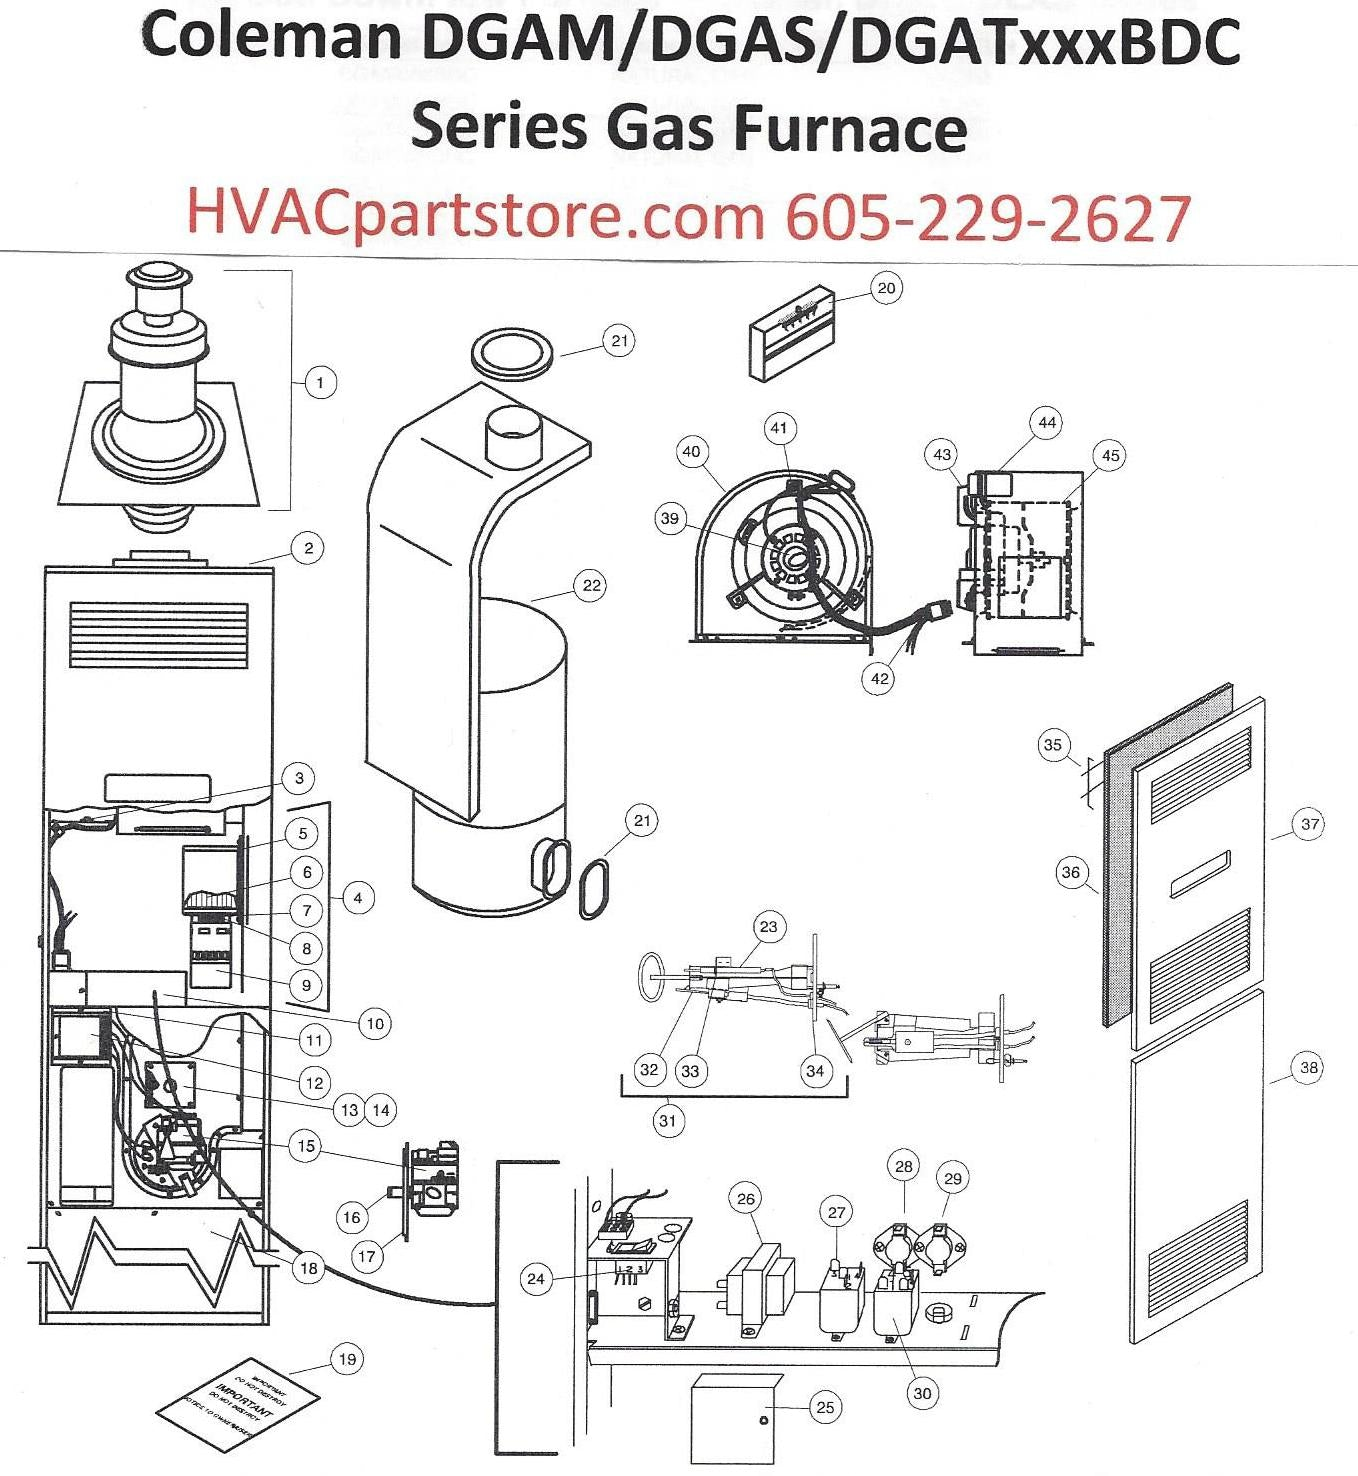 Coleman Forced Air Furnace Wiring Diagram Schematics Diagrams Ge Gas Dgat056bdc Parts Hvacpartstore Rh Myshopify Com Typical